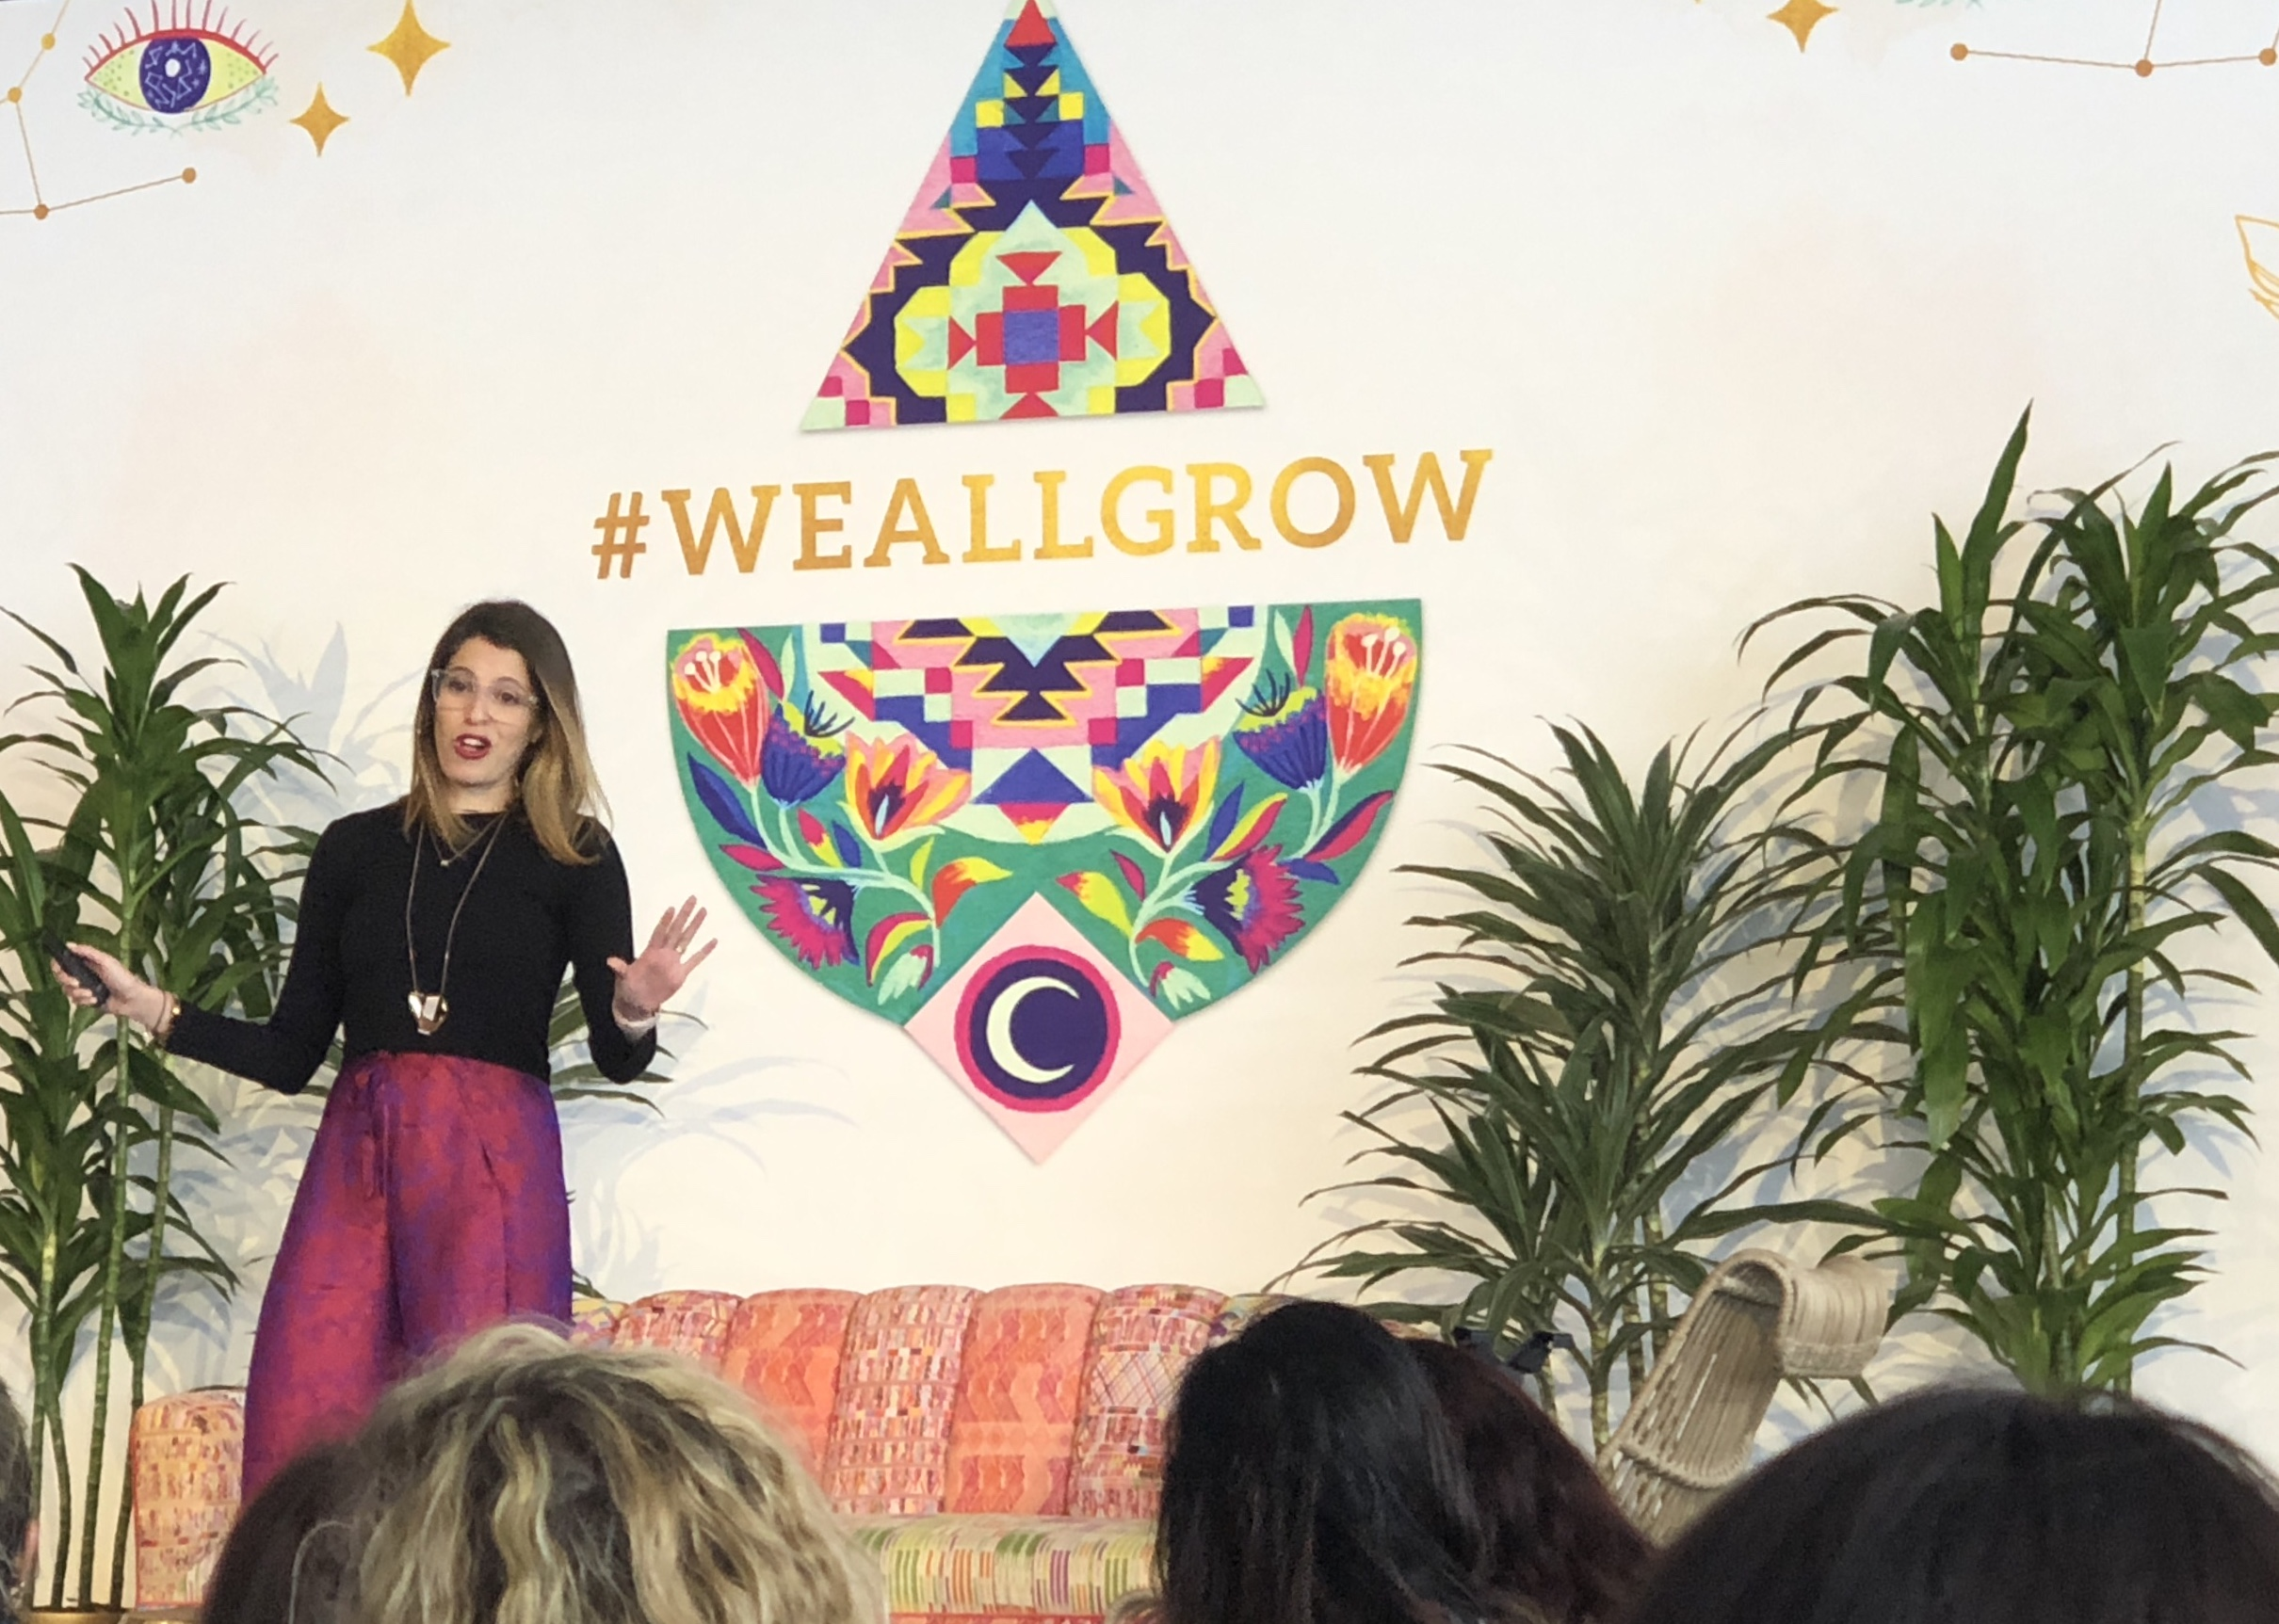 A Keynote speaker at the 2018 We All Grow Latina Summit